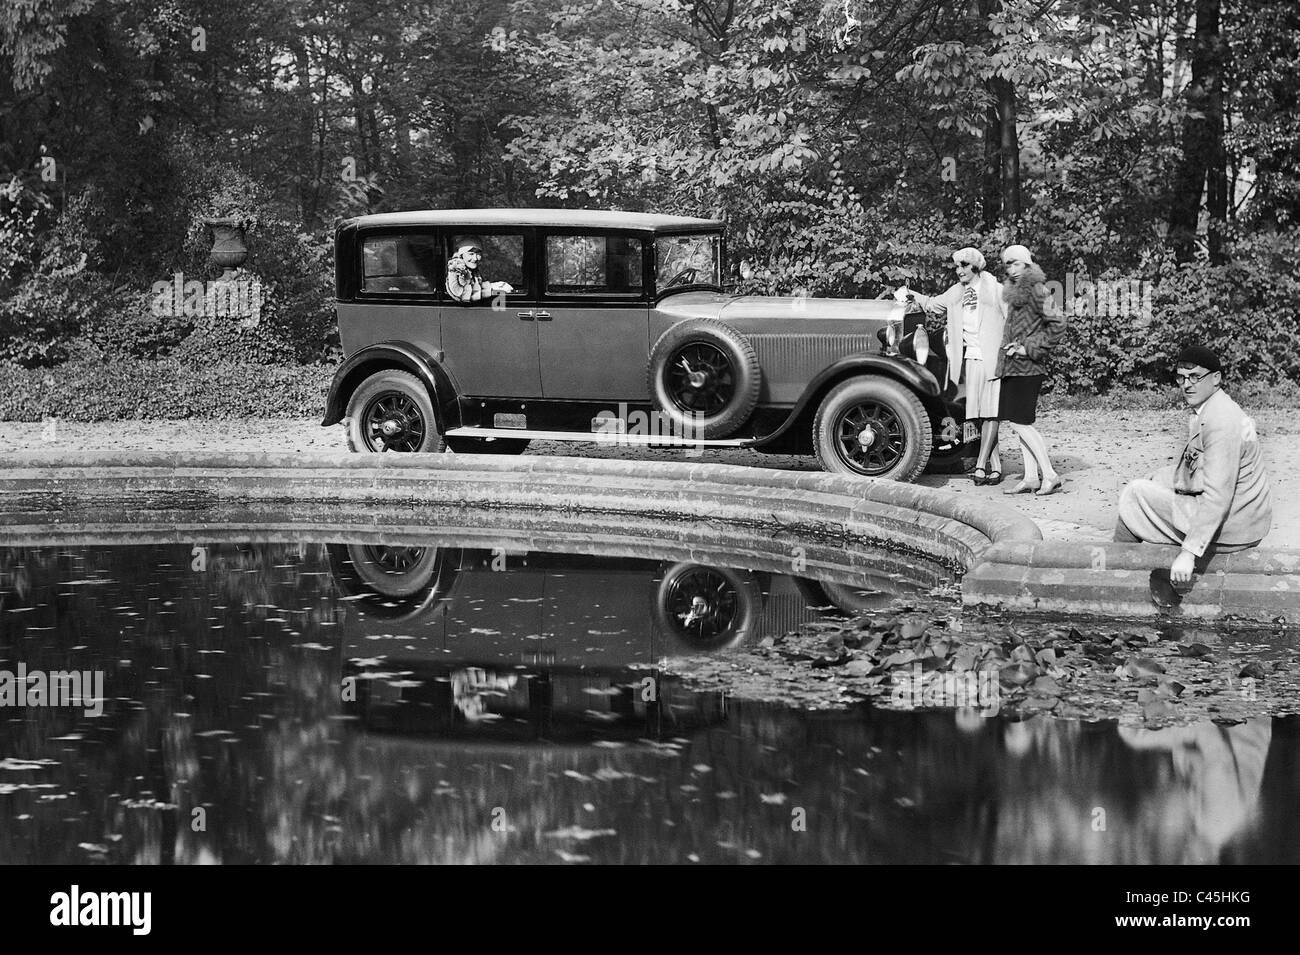 Mercedes-Benz 'Nuerburg' model, 1929 - Stock Image